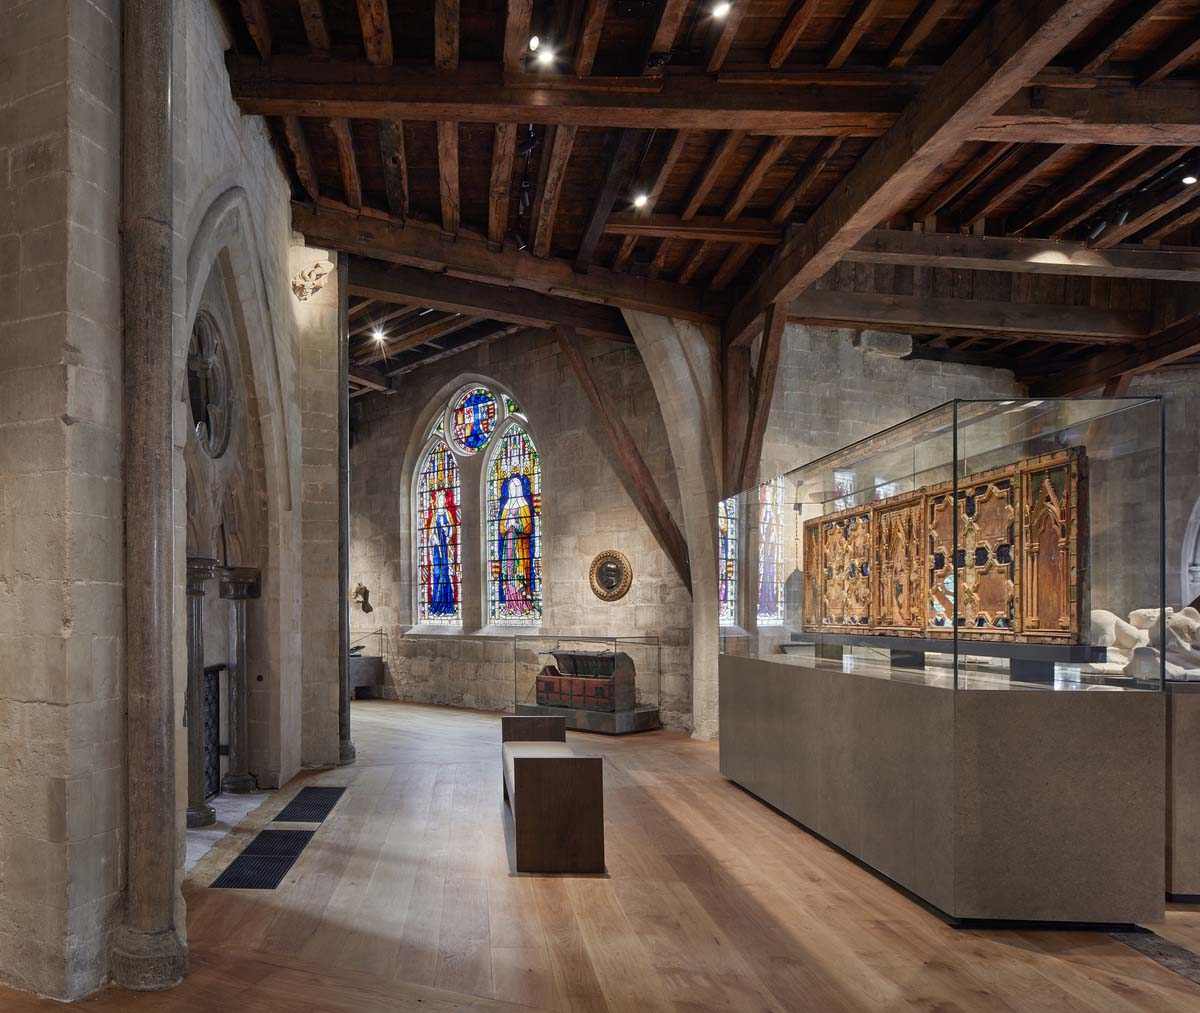 gallery view of a room with stained glass windows, stone walls and beamed ceiling with display cases